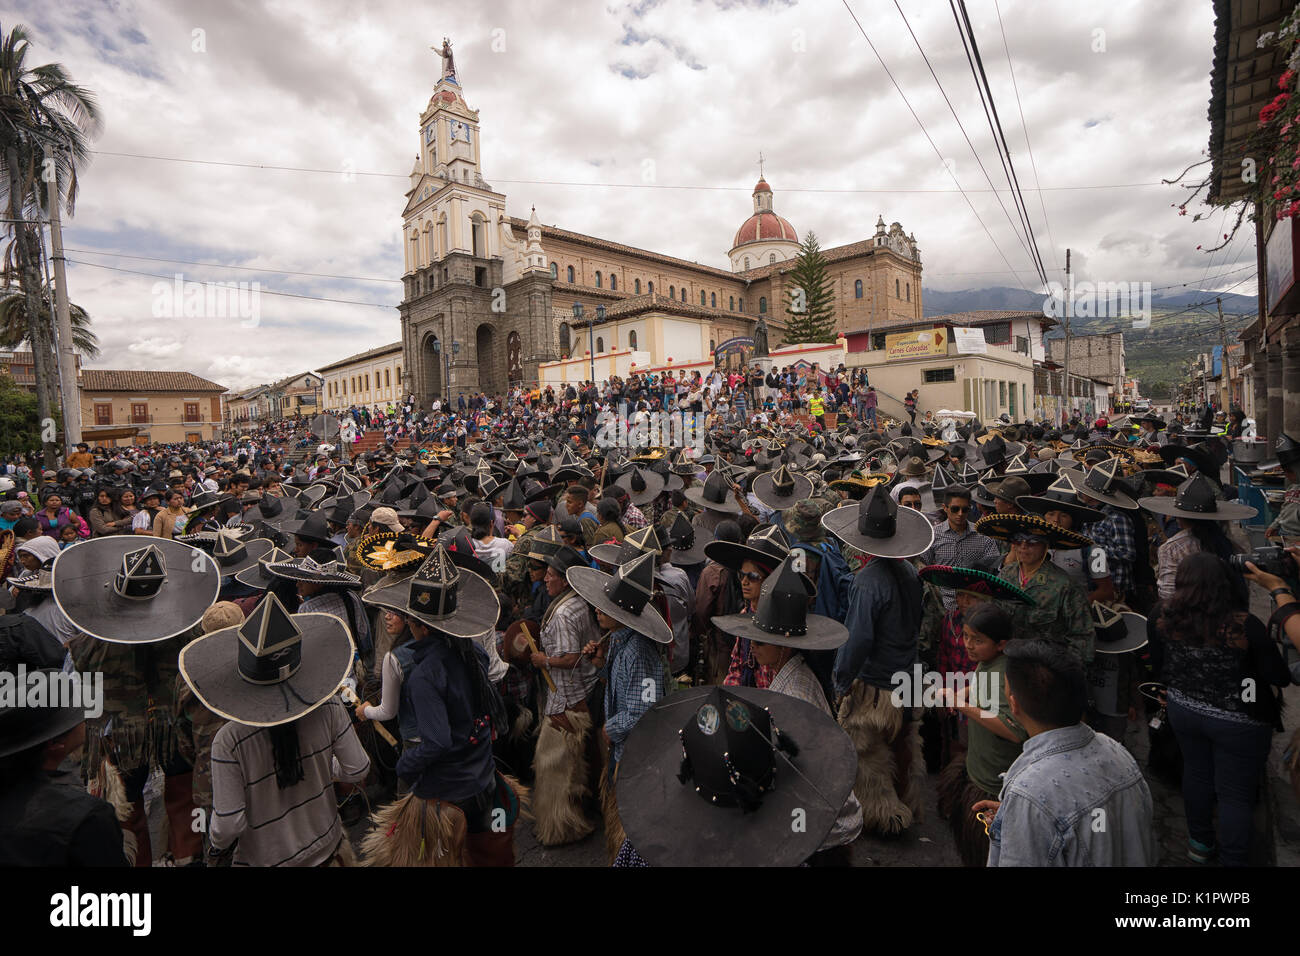 June 24, 2017 Cotacachi, Ecuador: a large crowd at the Inti Raymi celebrations of the summer solstice - Stock Image